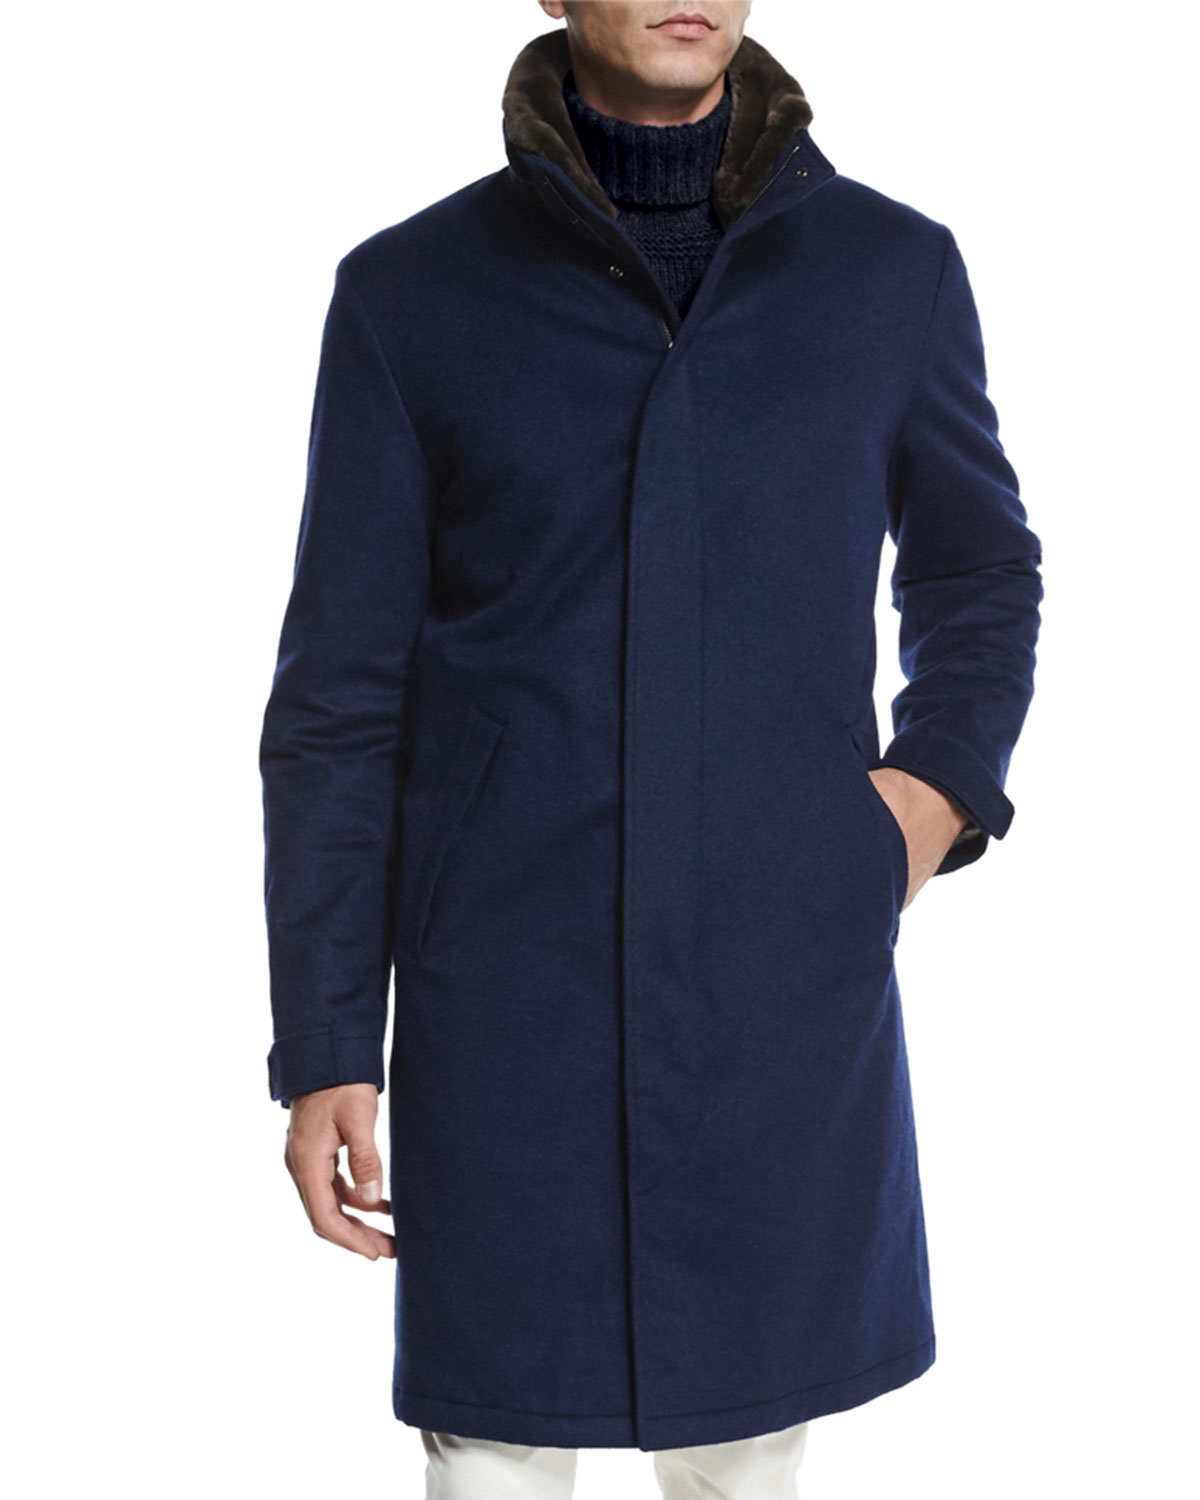 7077acd4d43d Loro Piana Men s Icer Cashmere Coat with Fur-Trimmed Collar